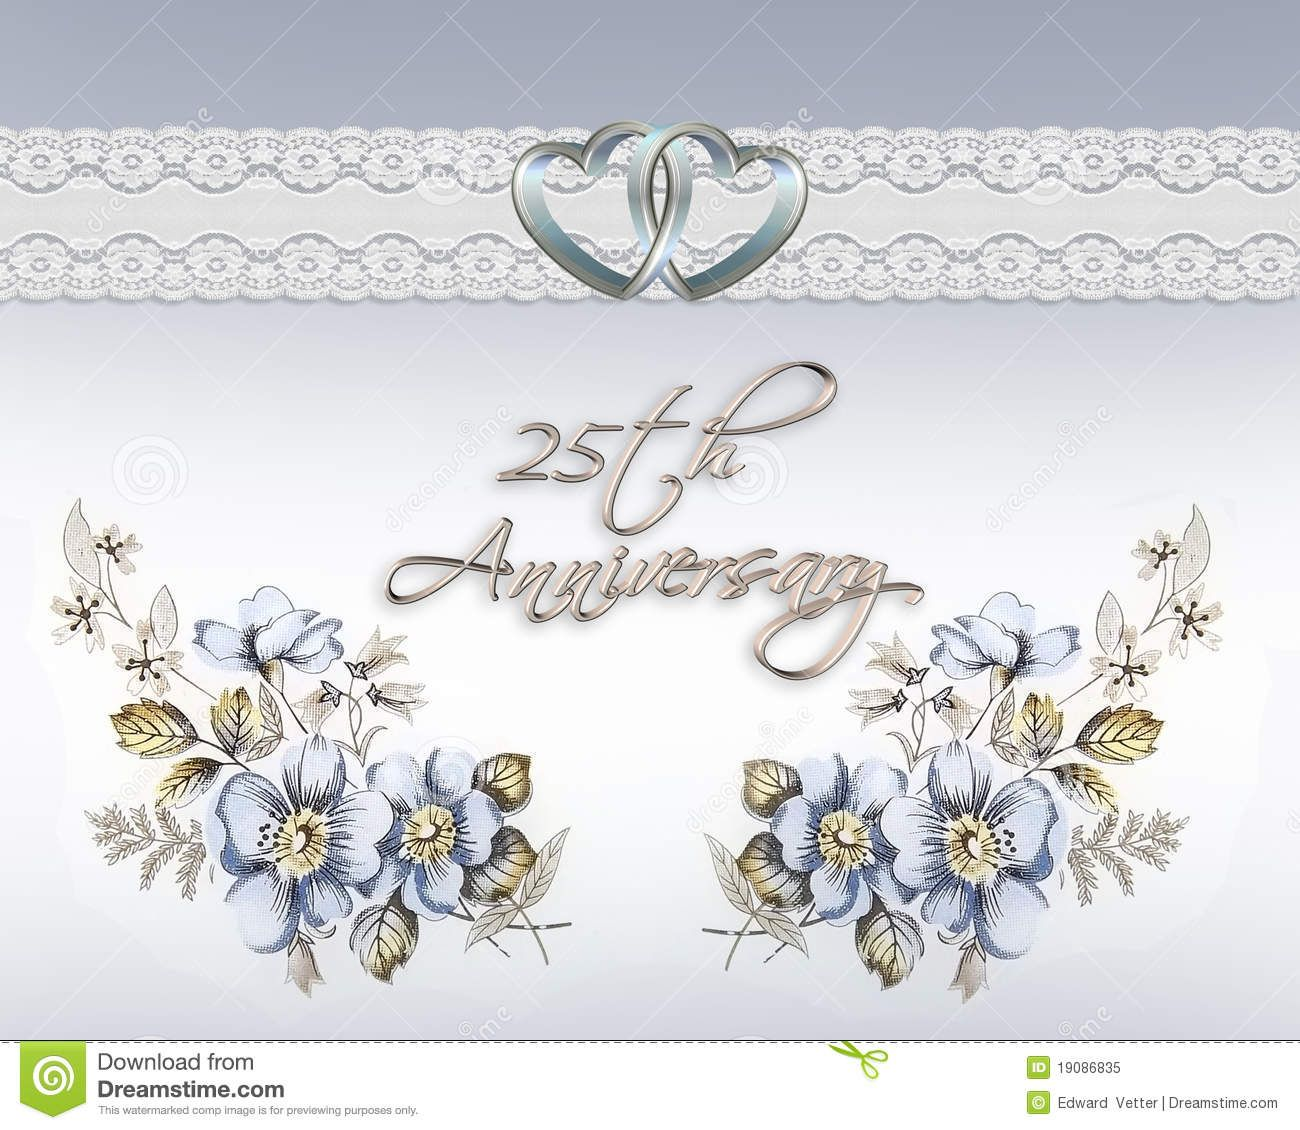 25th wedding anniversary 25th wedding anniversary cards free download Google Search